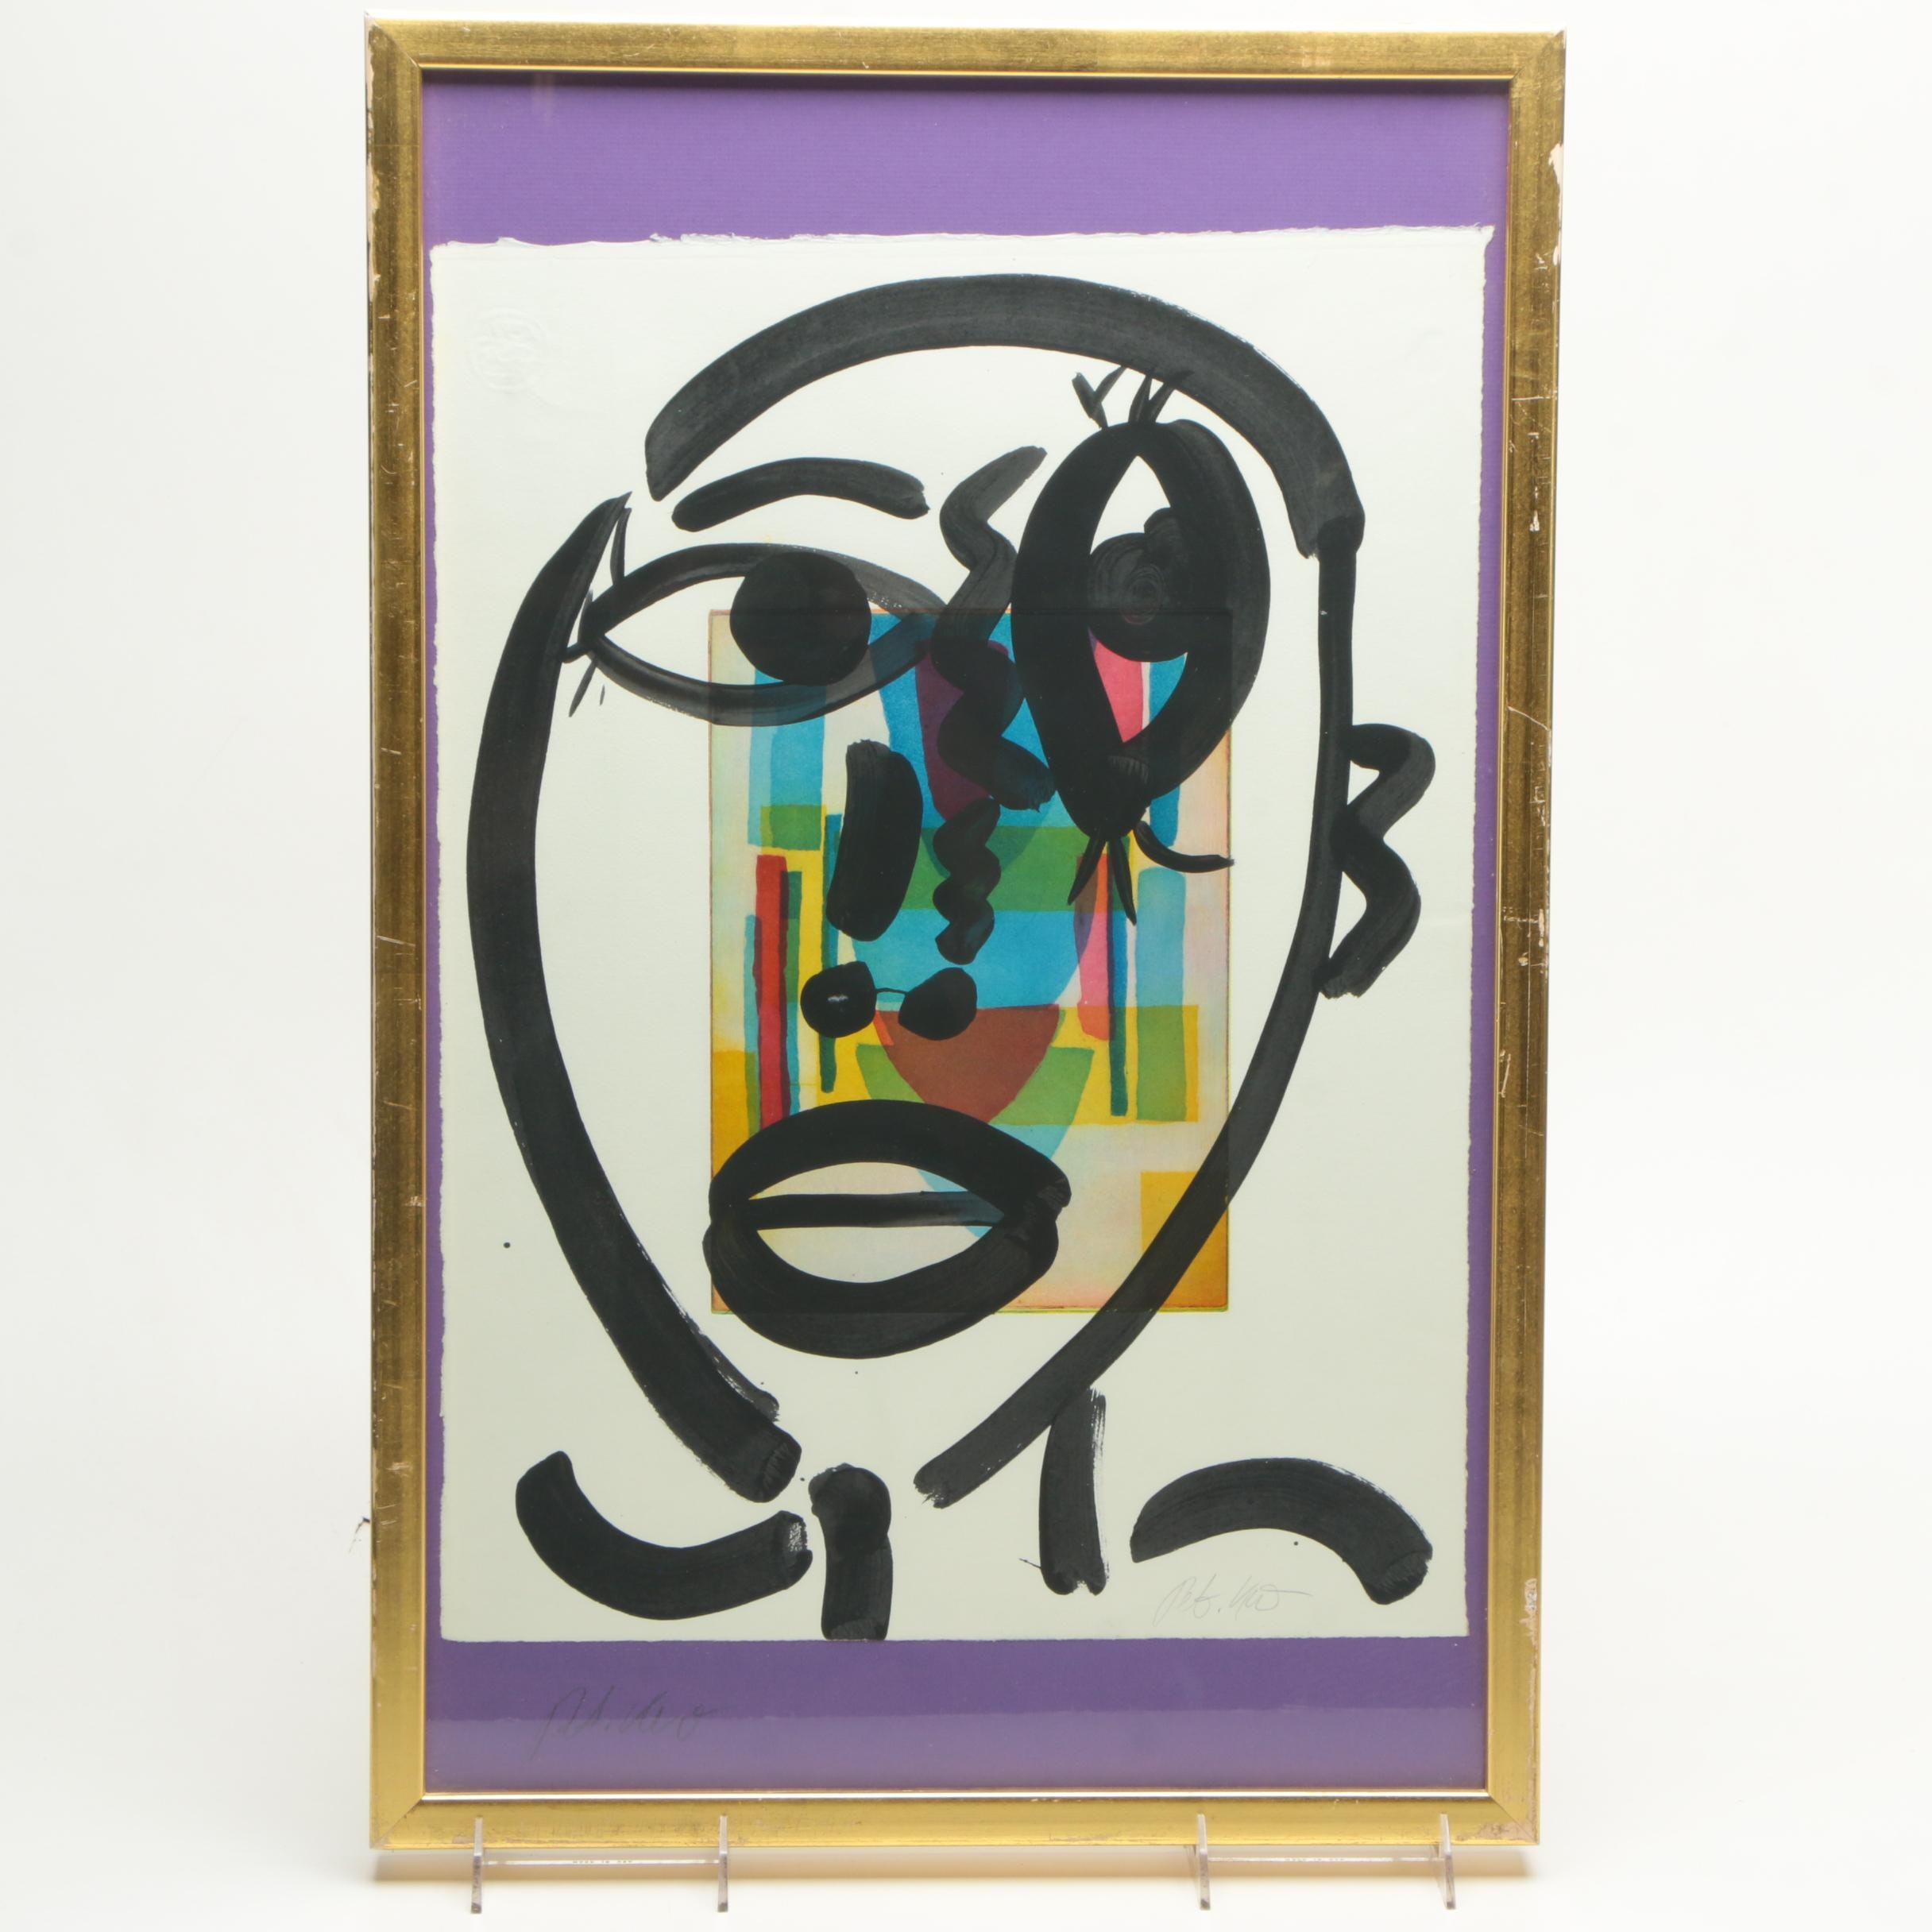 Peter Keil Hand Embellished Lithograph Abstract Portrait